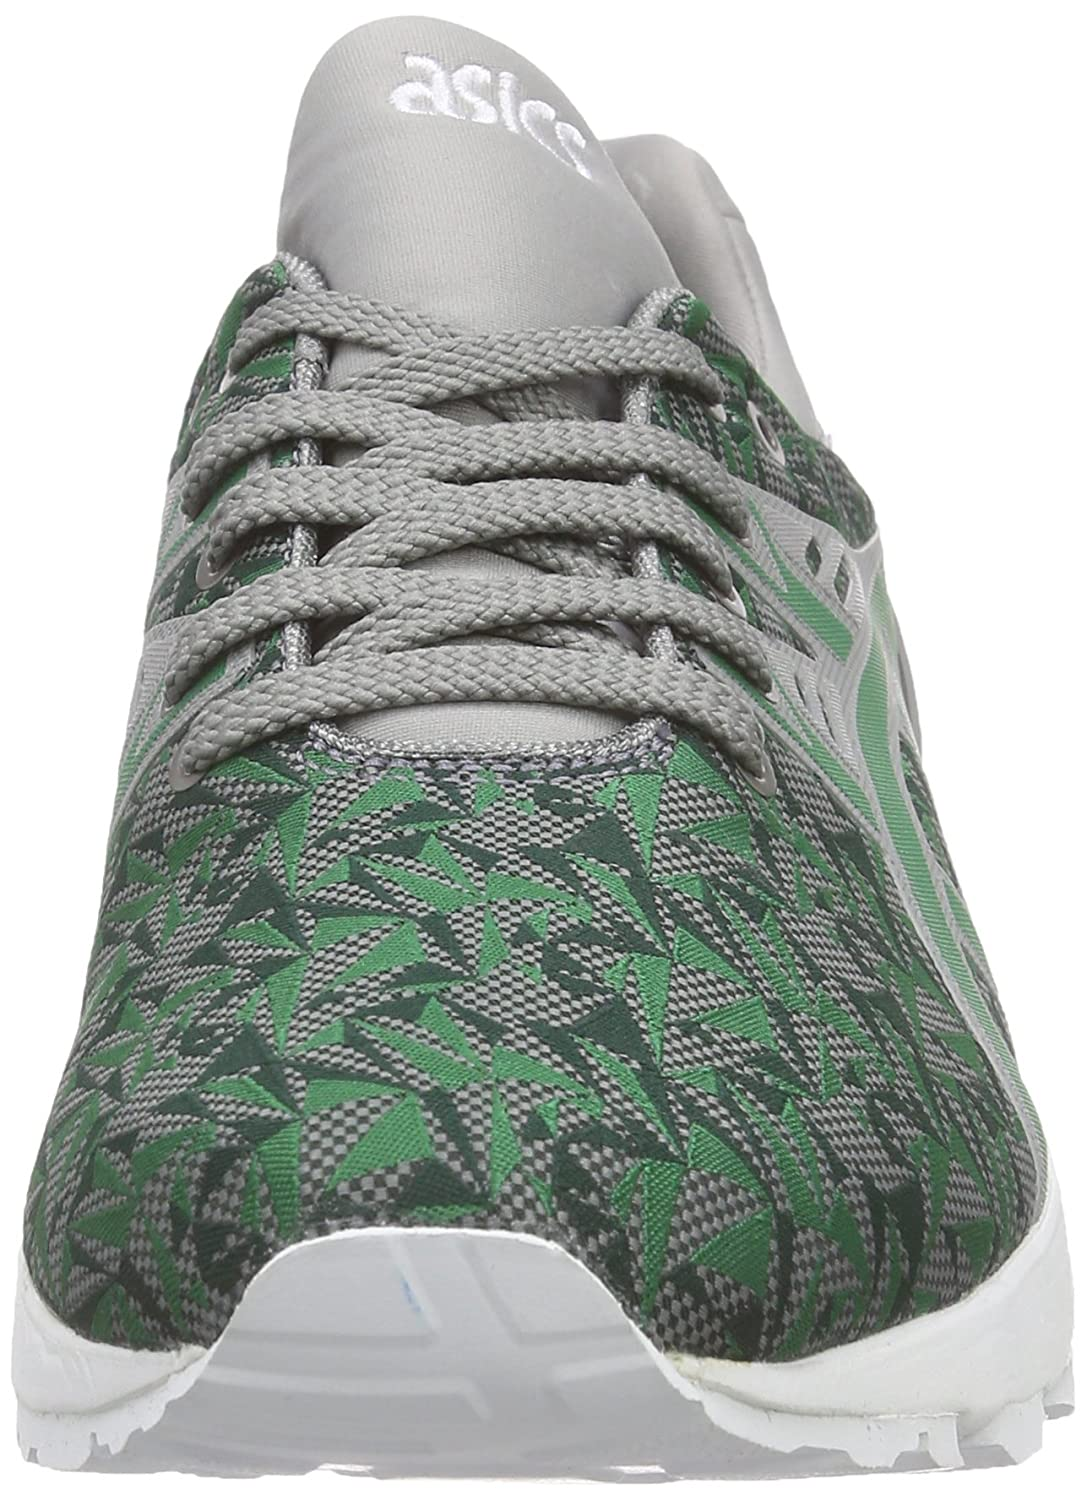 ASICS Unisex-Erwachsene Gel-Kayano Trainer Evo Low-top Grün (Green/Green 8484)